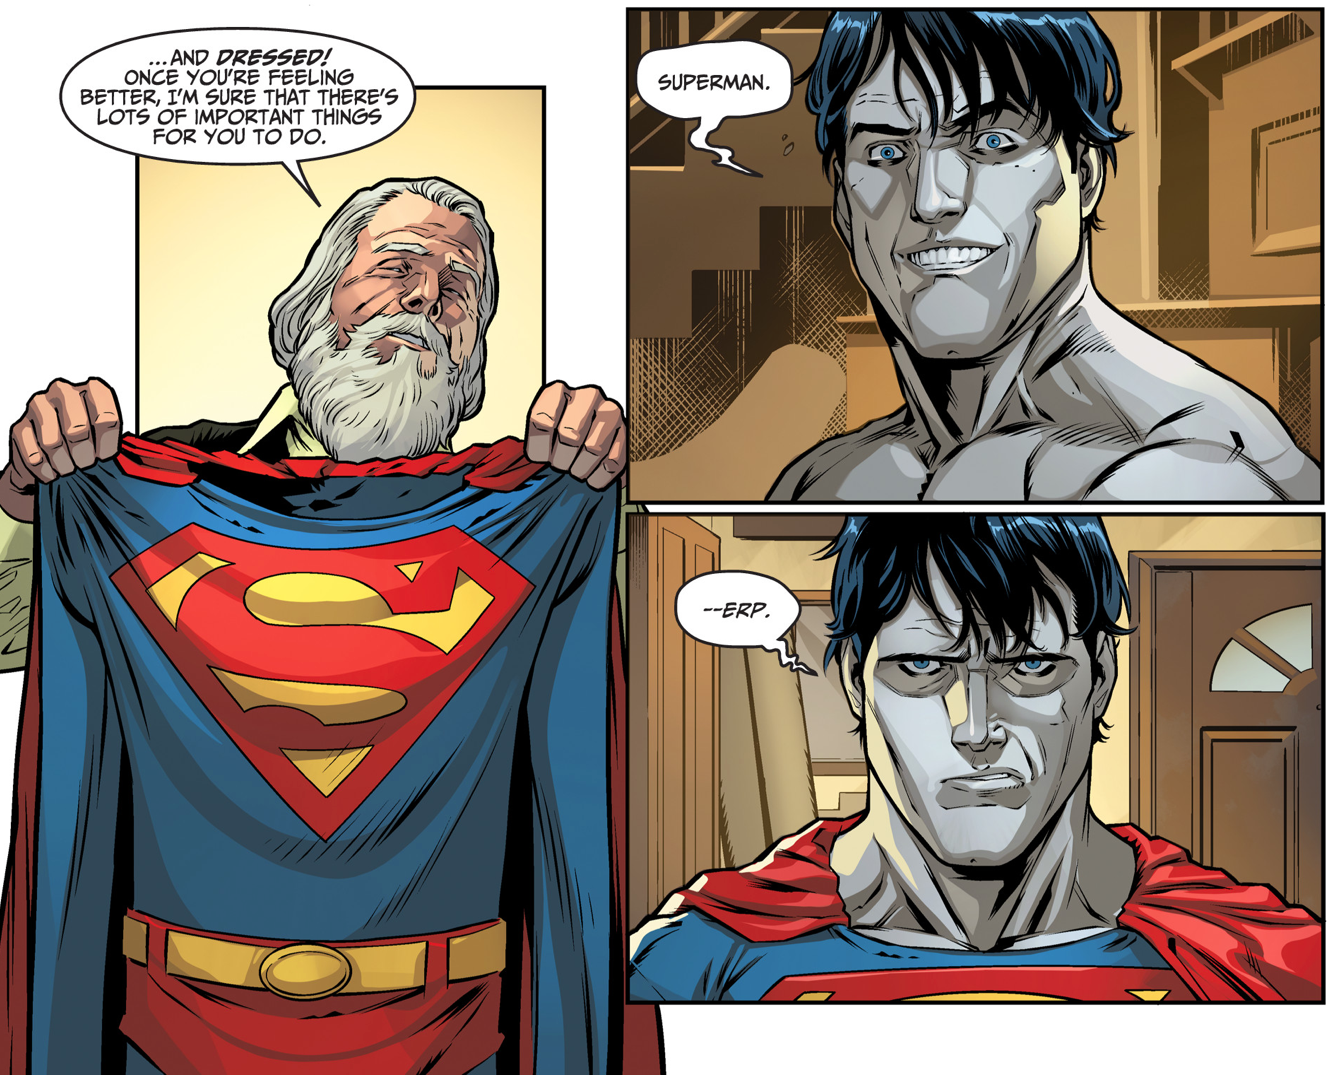 bizarro gets his costume